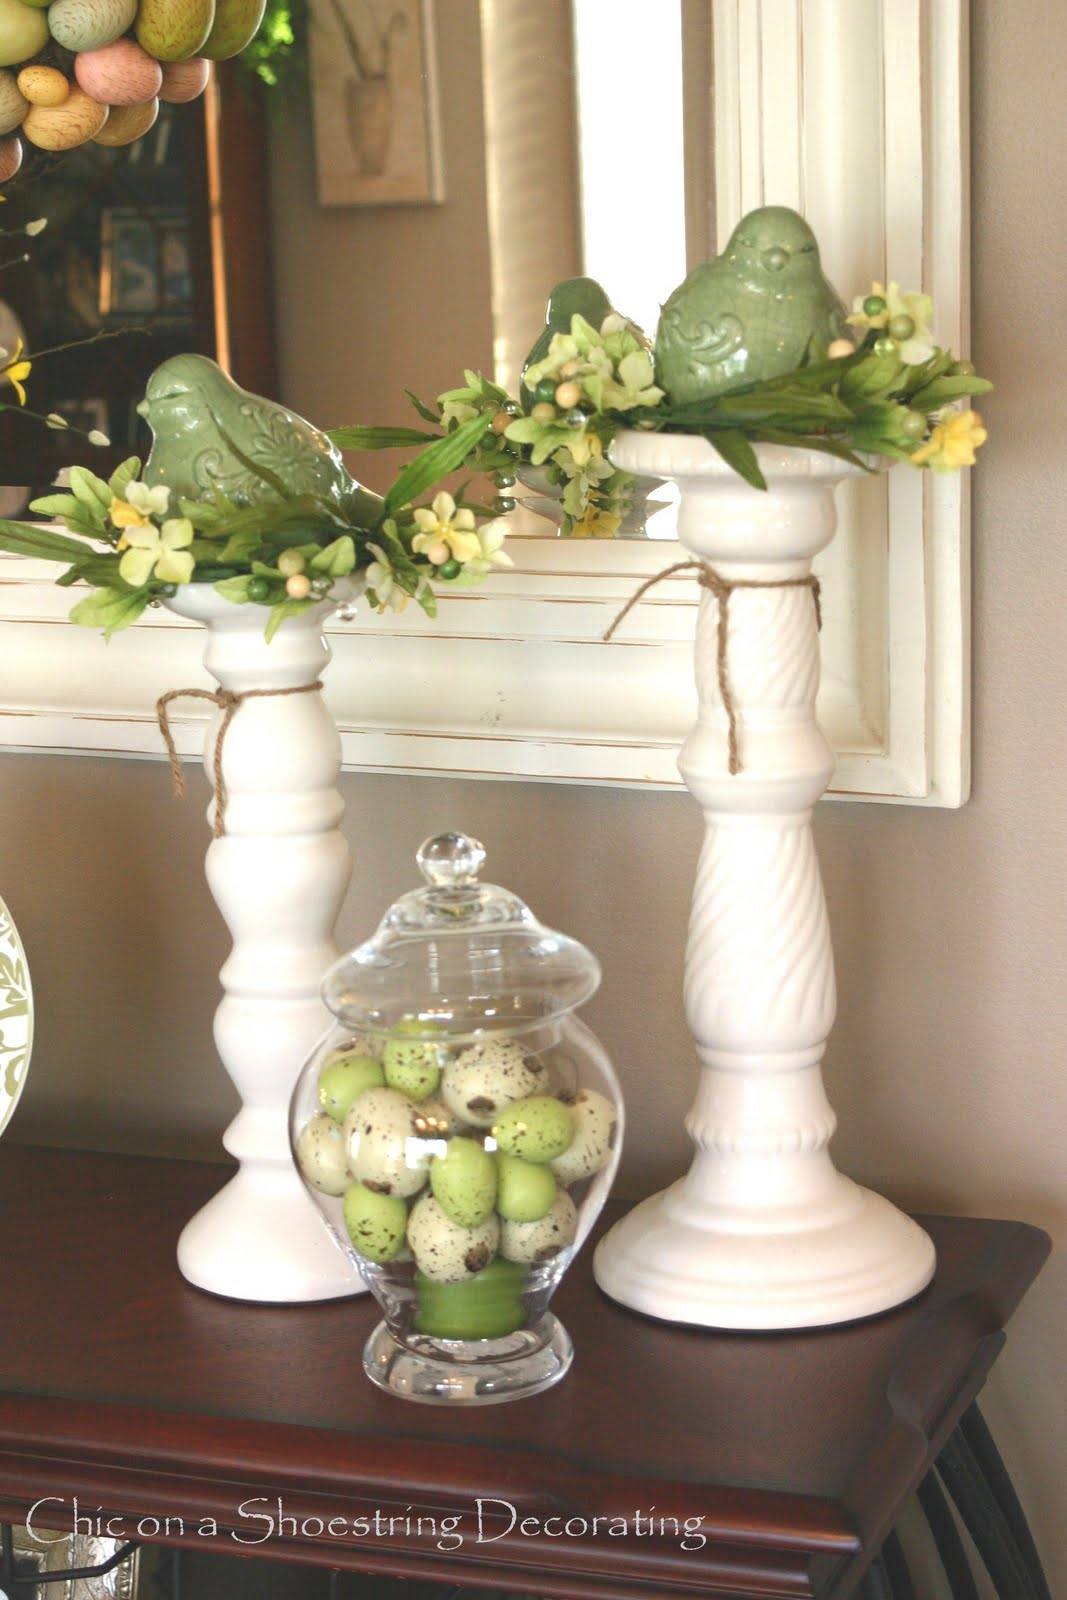 48 best images about easter decor on Pinterest | Recycled cans ...